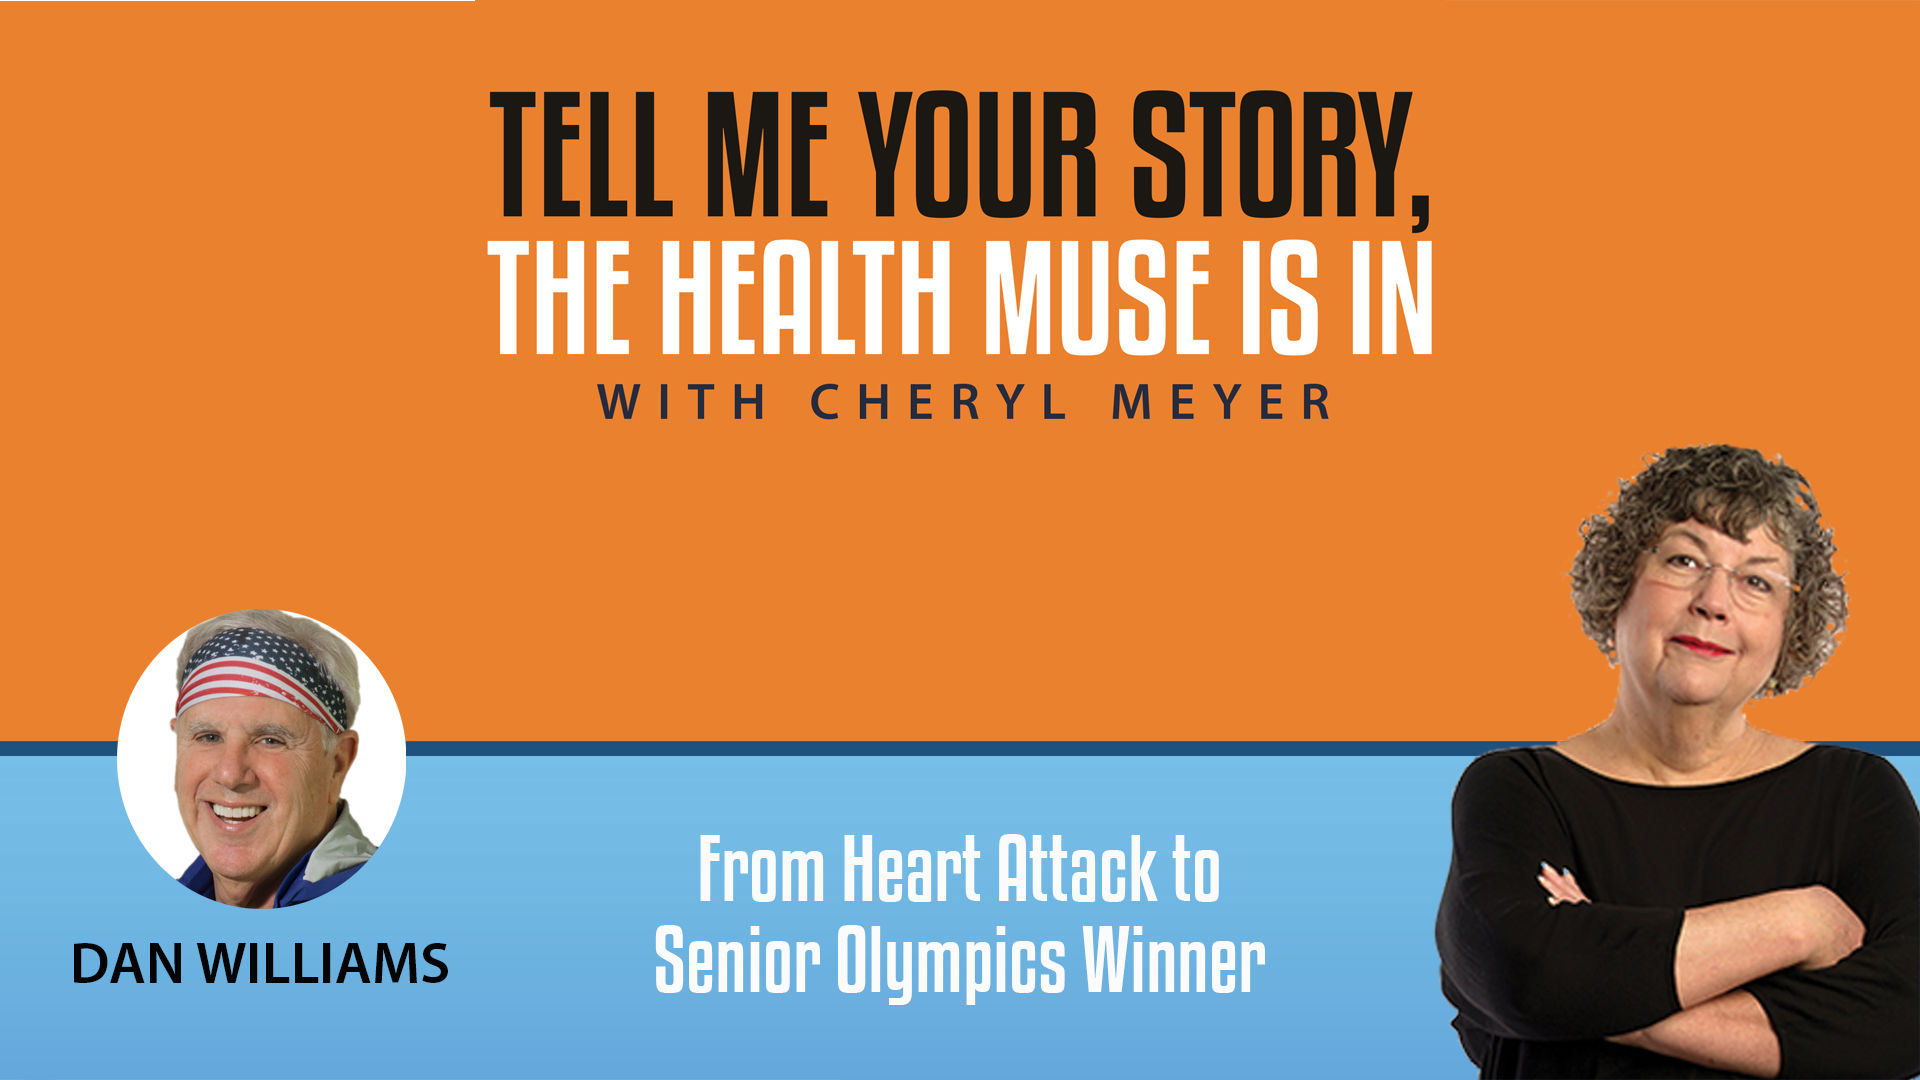 Tell Me Your Story Dan Williams, From Heart Attack to Senior Olympics Winner